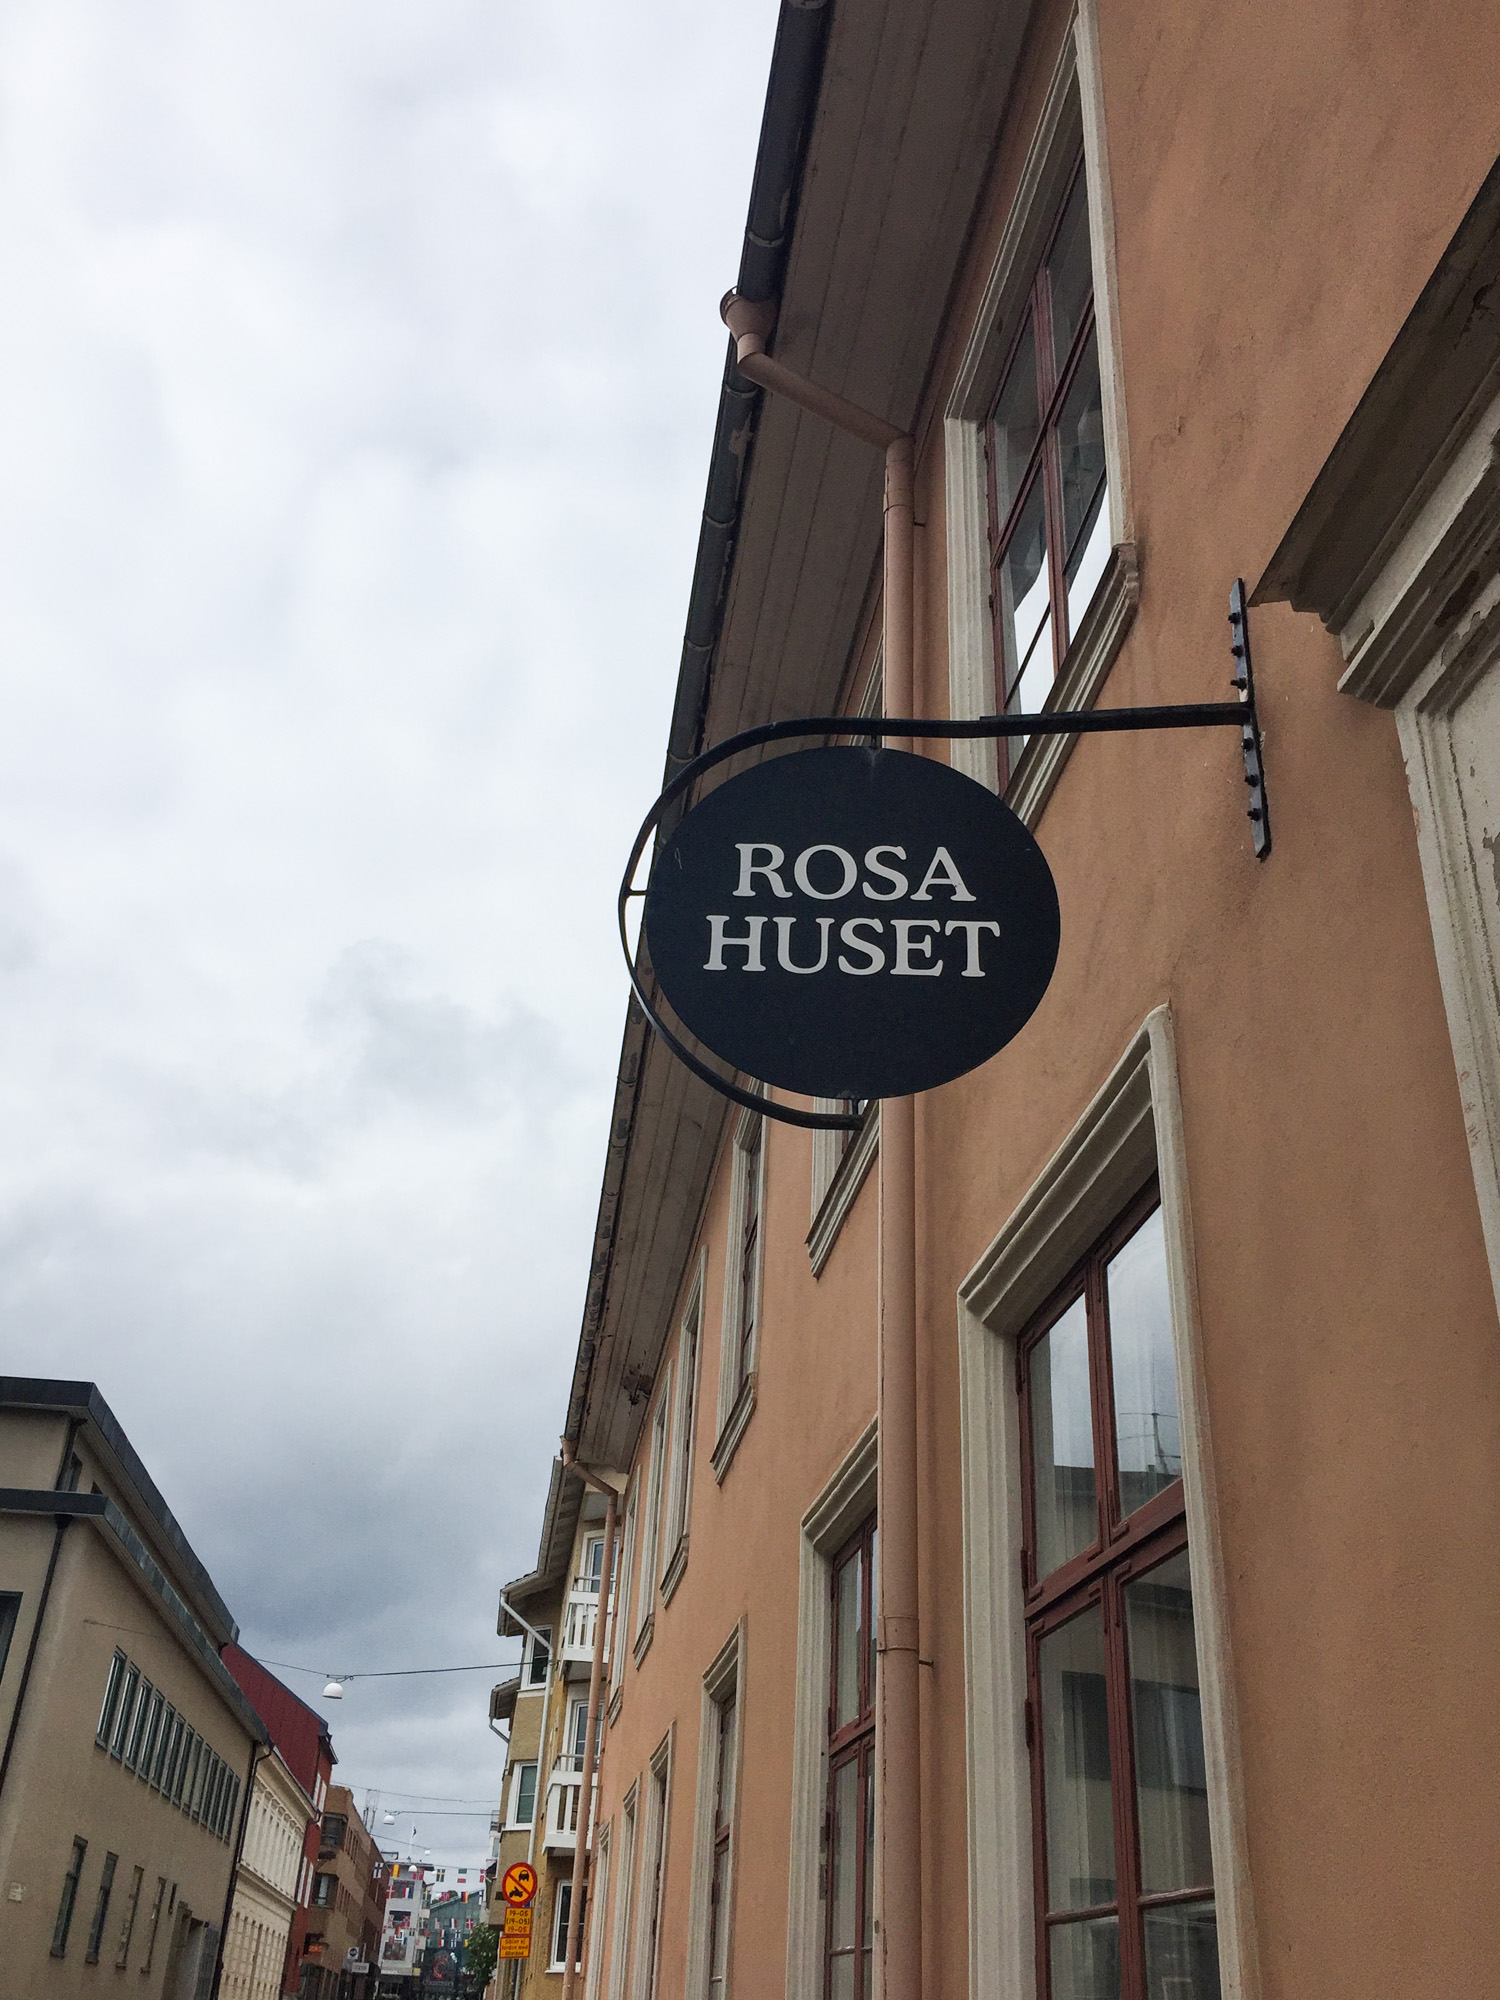 Tiina Petersson exhibition Rosa huset May 2016